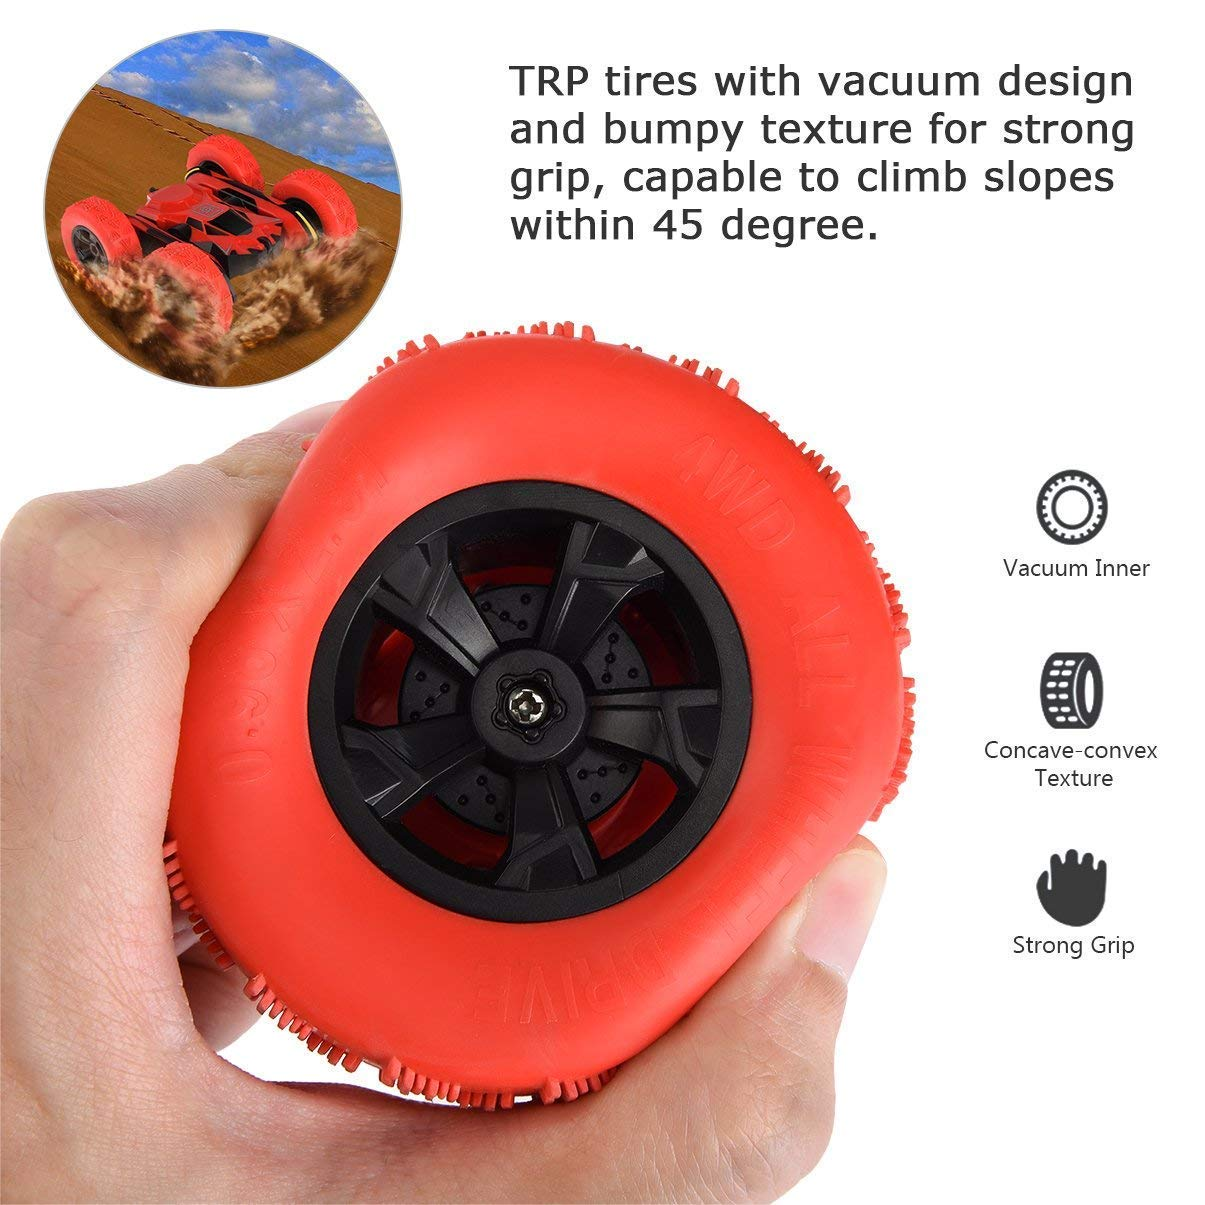 RC Cars Stunt Car Toy, Amicool 4WD 2.4Ghz Remote Control Car Double Sided Rotating Vehicles 360° Flips, Kids Toy Cars for Boys & Girls Birthday by Amicool (Image #4)